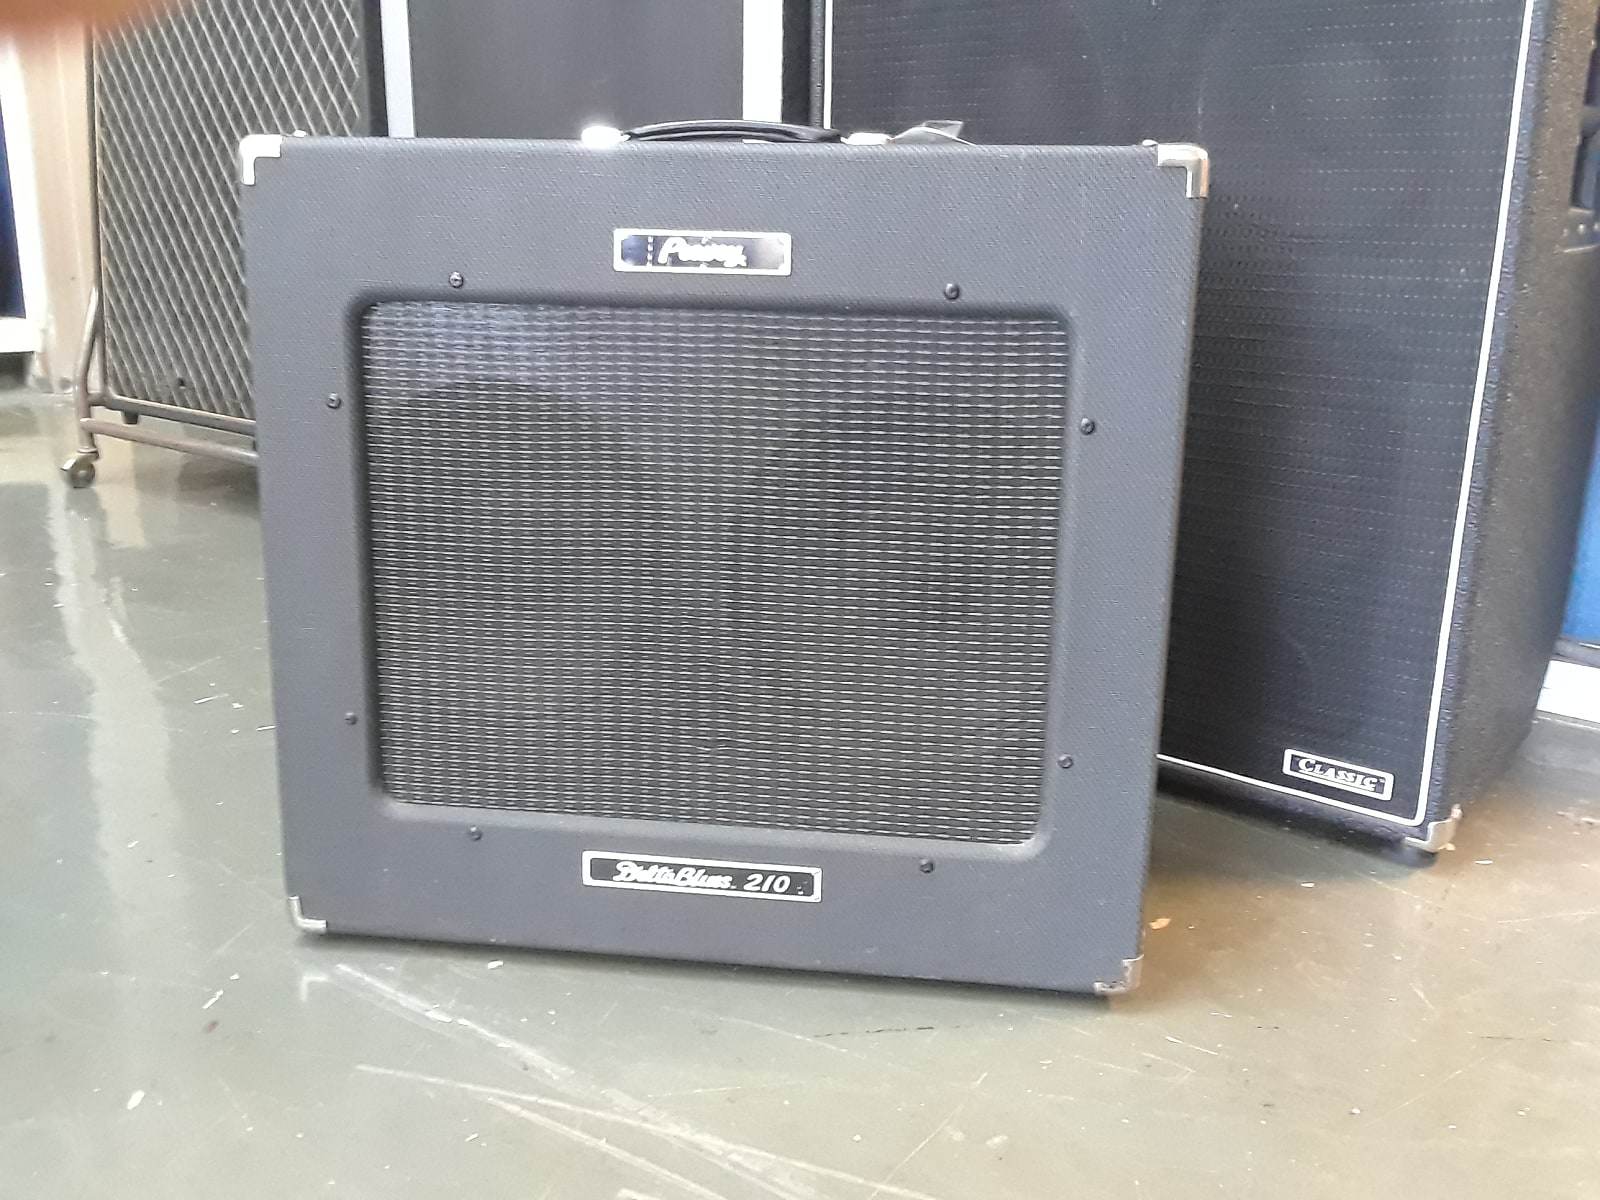 Peavey Delta Blues 210 Made In USA!